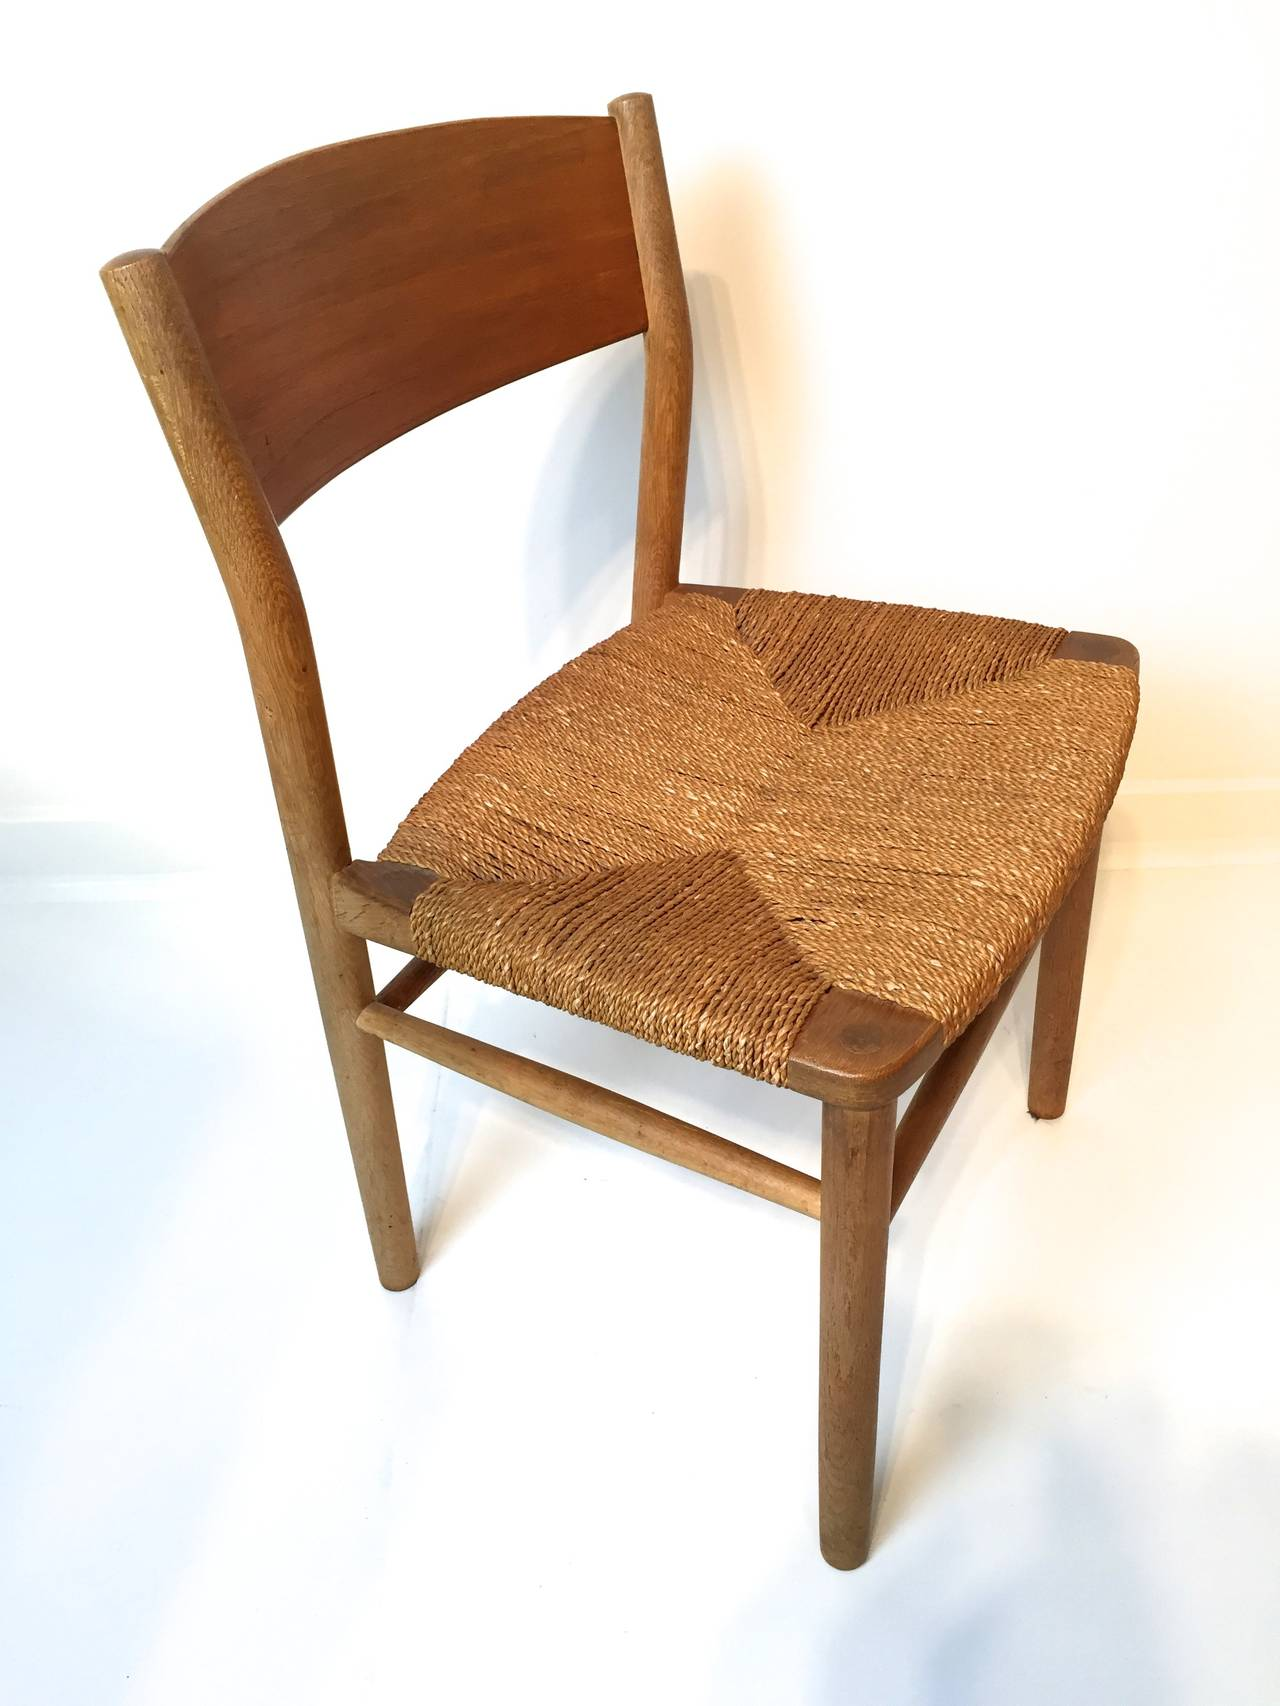 Mogensen Seagrass Dining Chair at 1stdibs